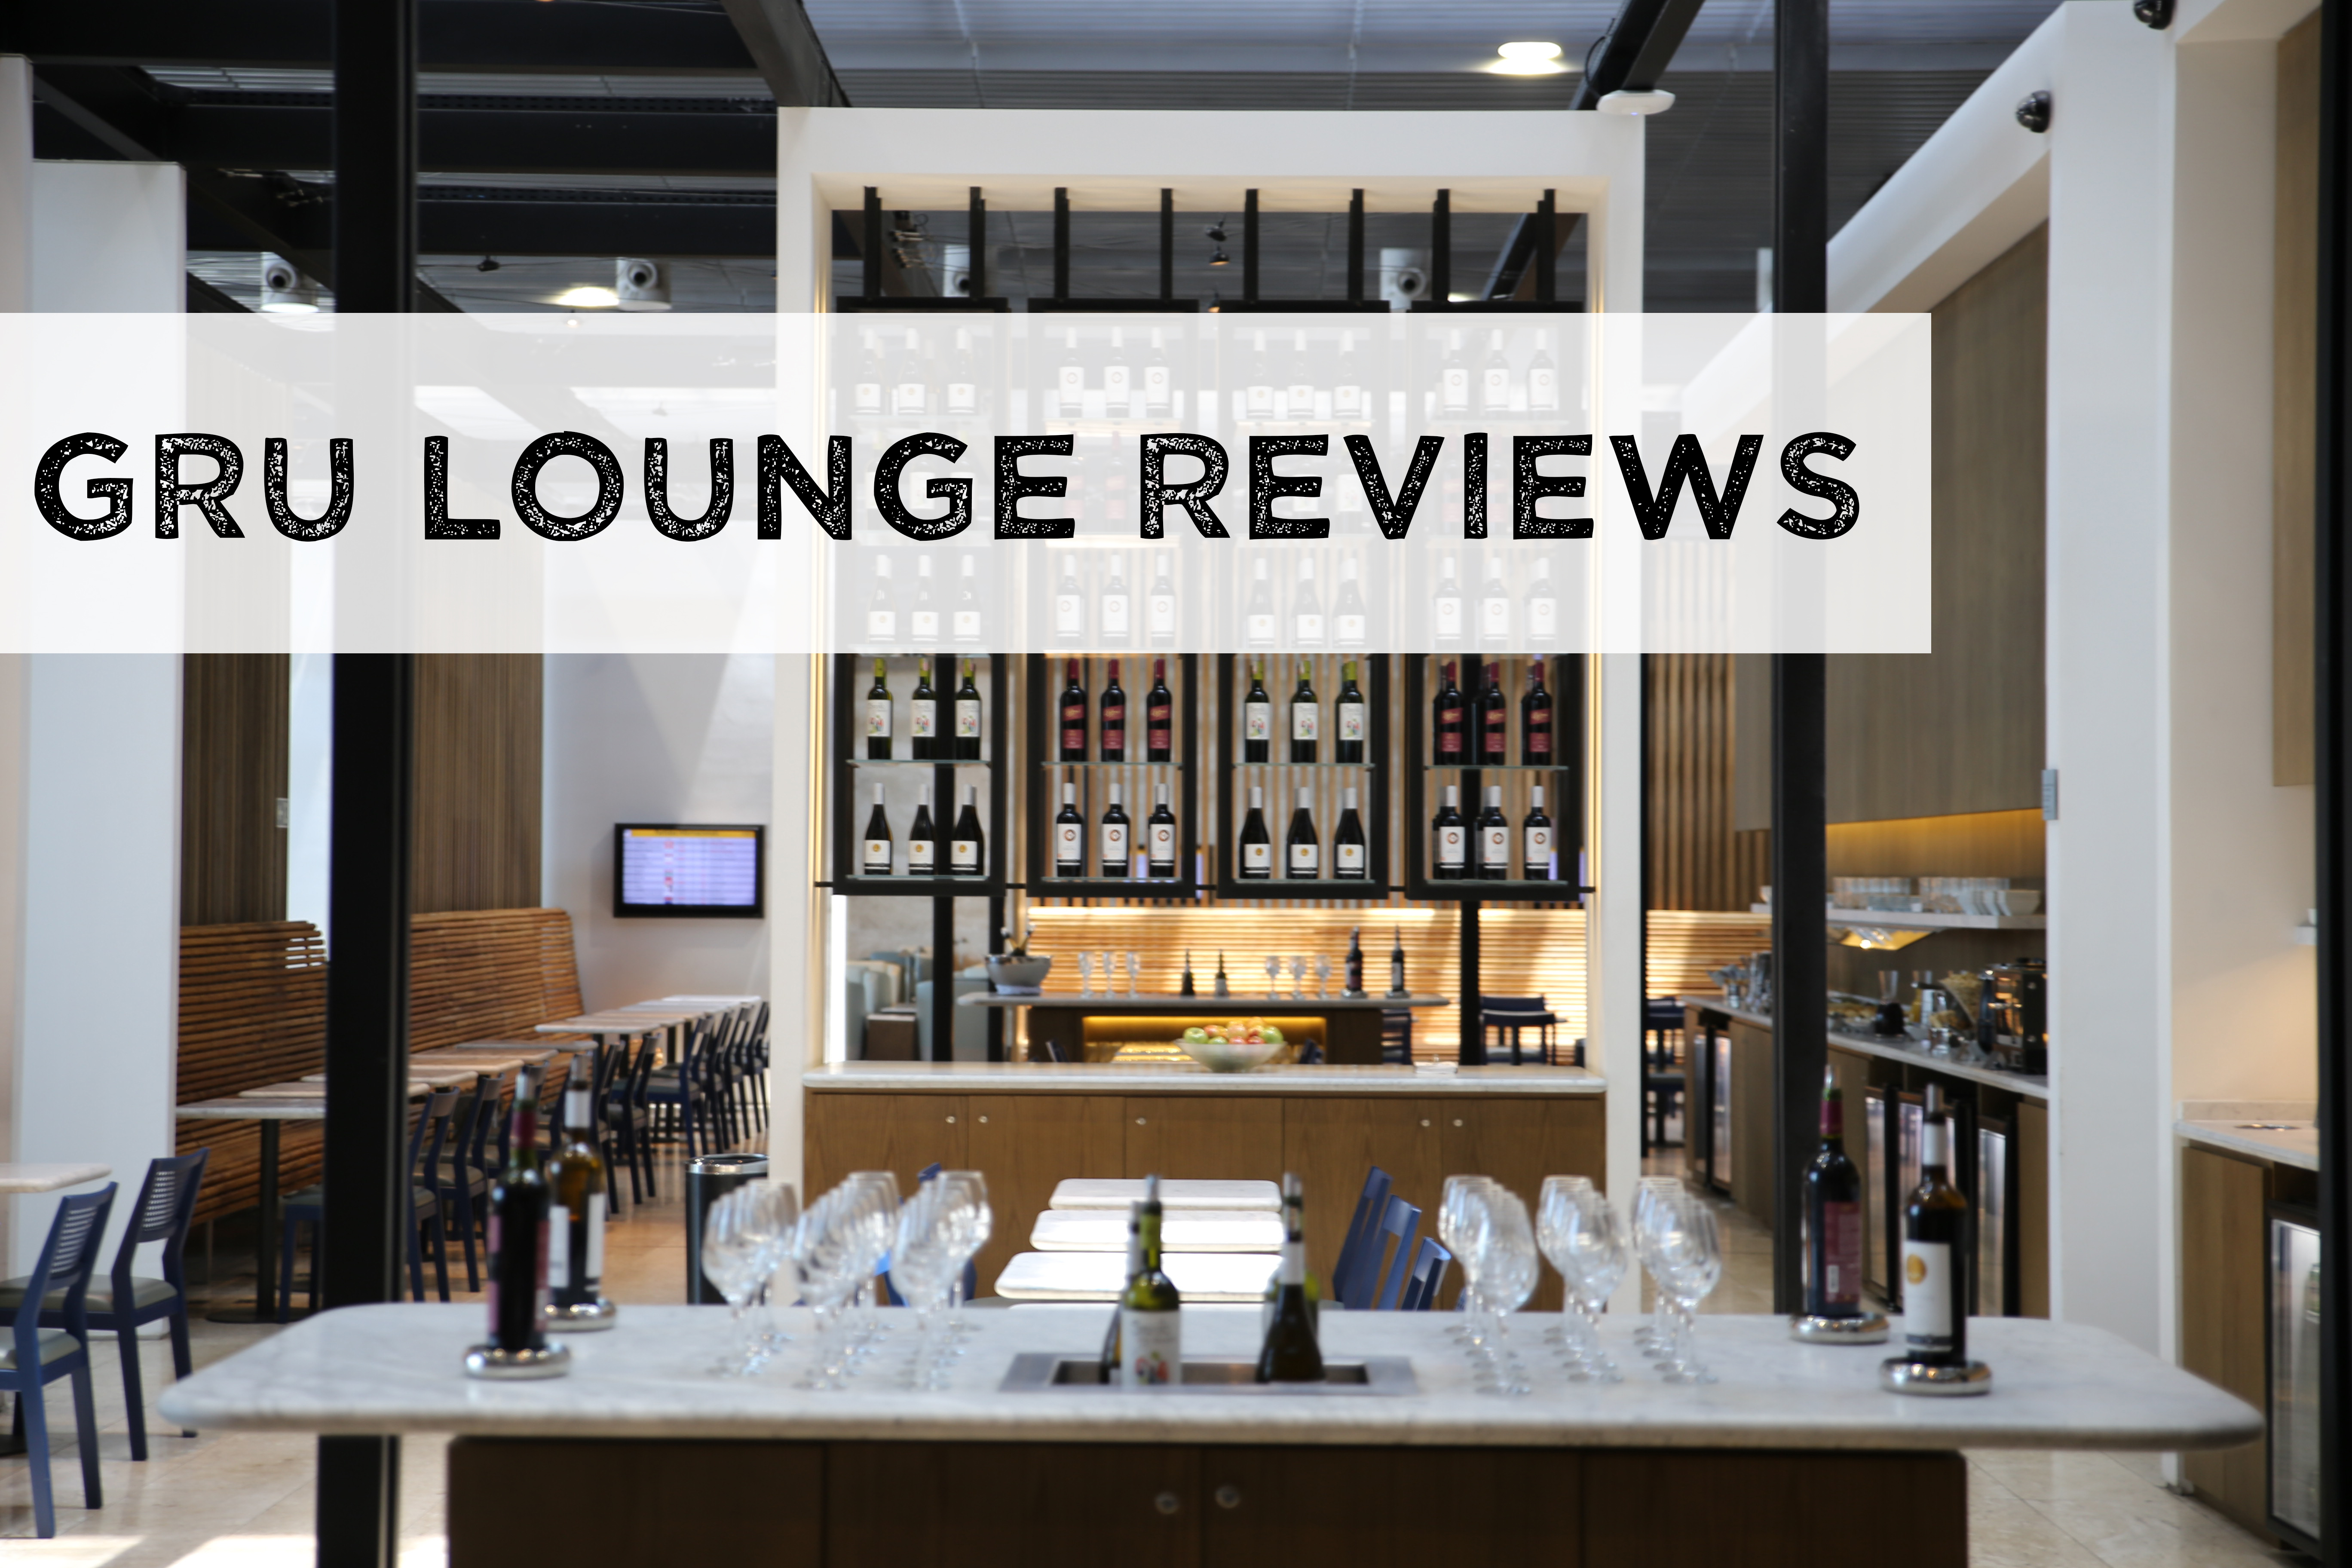 GRU Lounge Reviews – What I Learned After 60+ hours in the GRU Airport